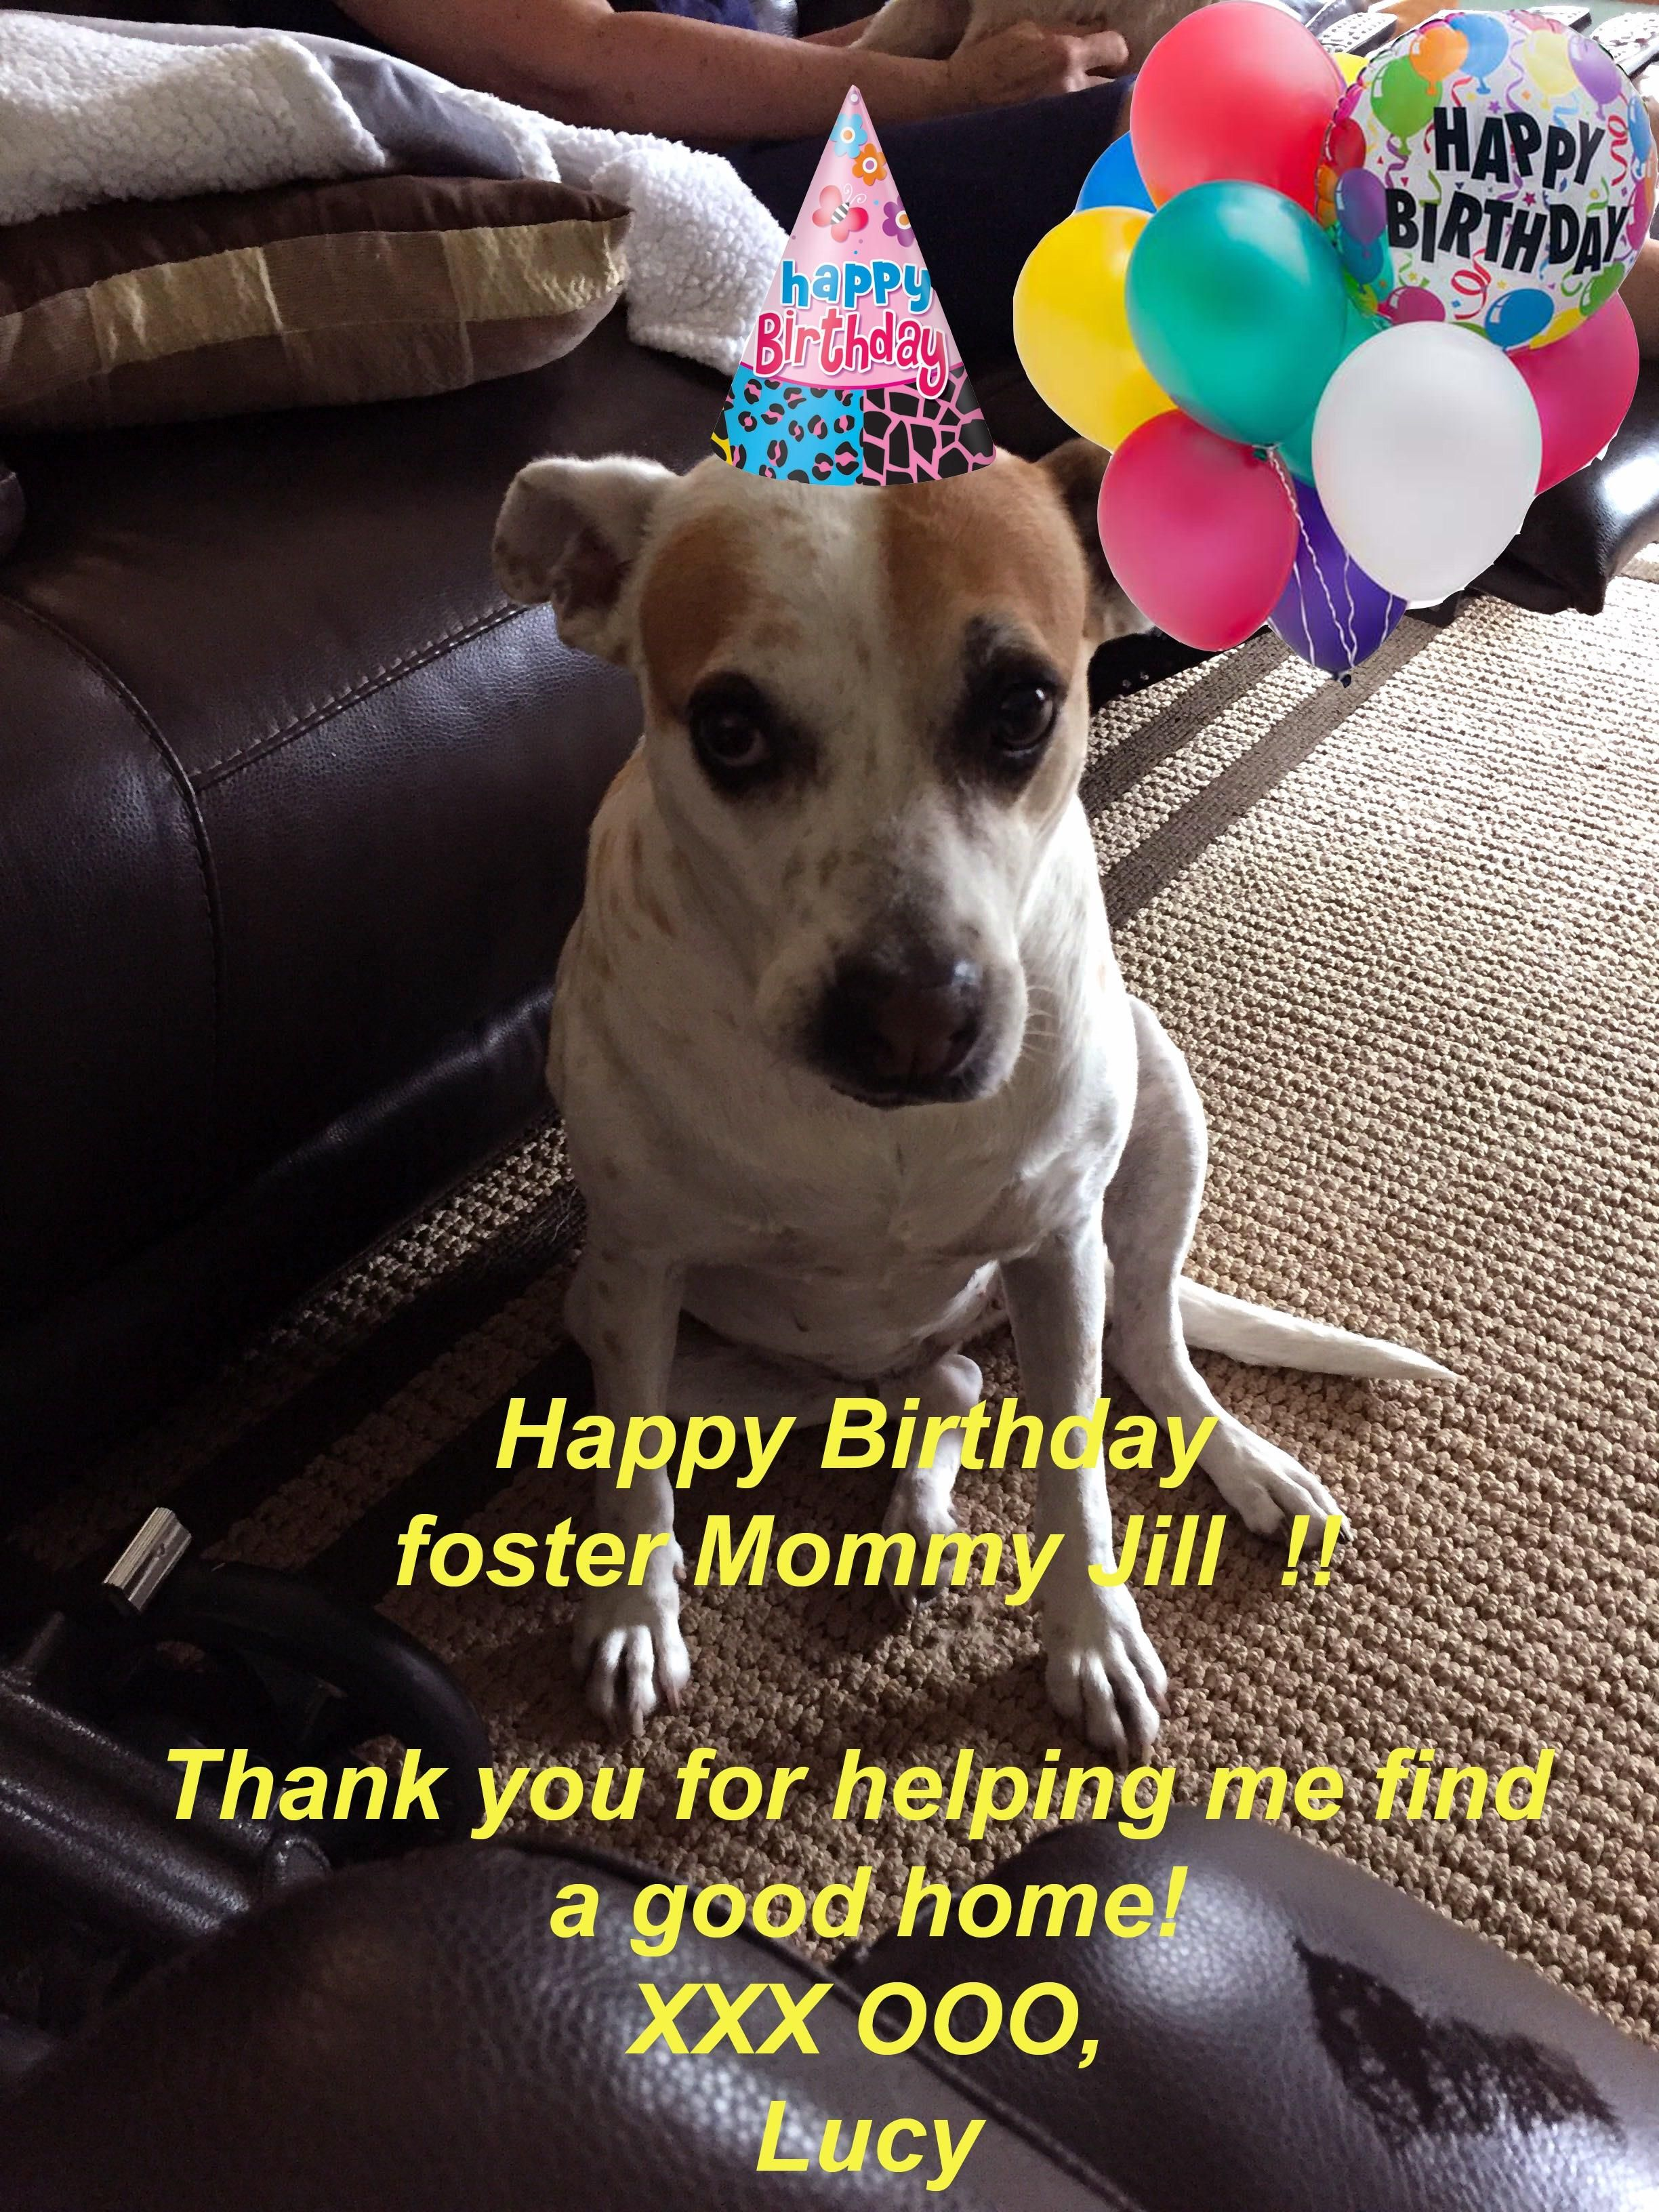 Our new rescue wishing her foster Happy Bday. http://ift.tt/2pvCRY6